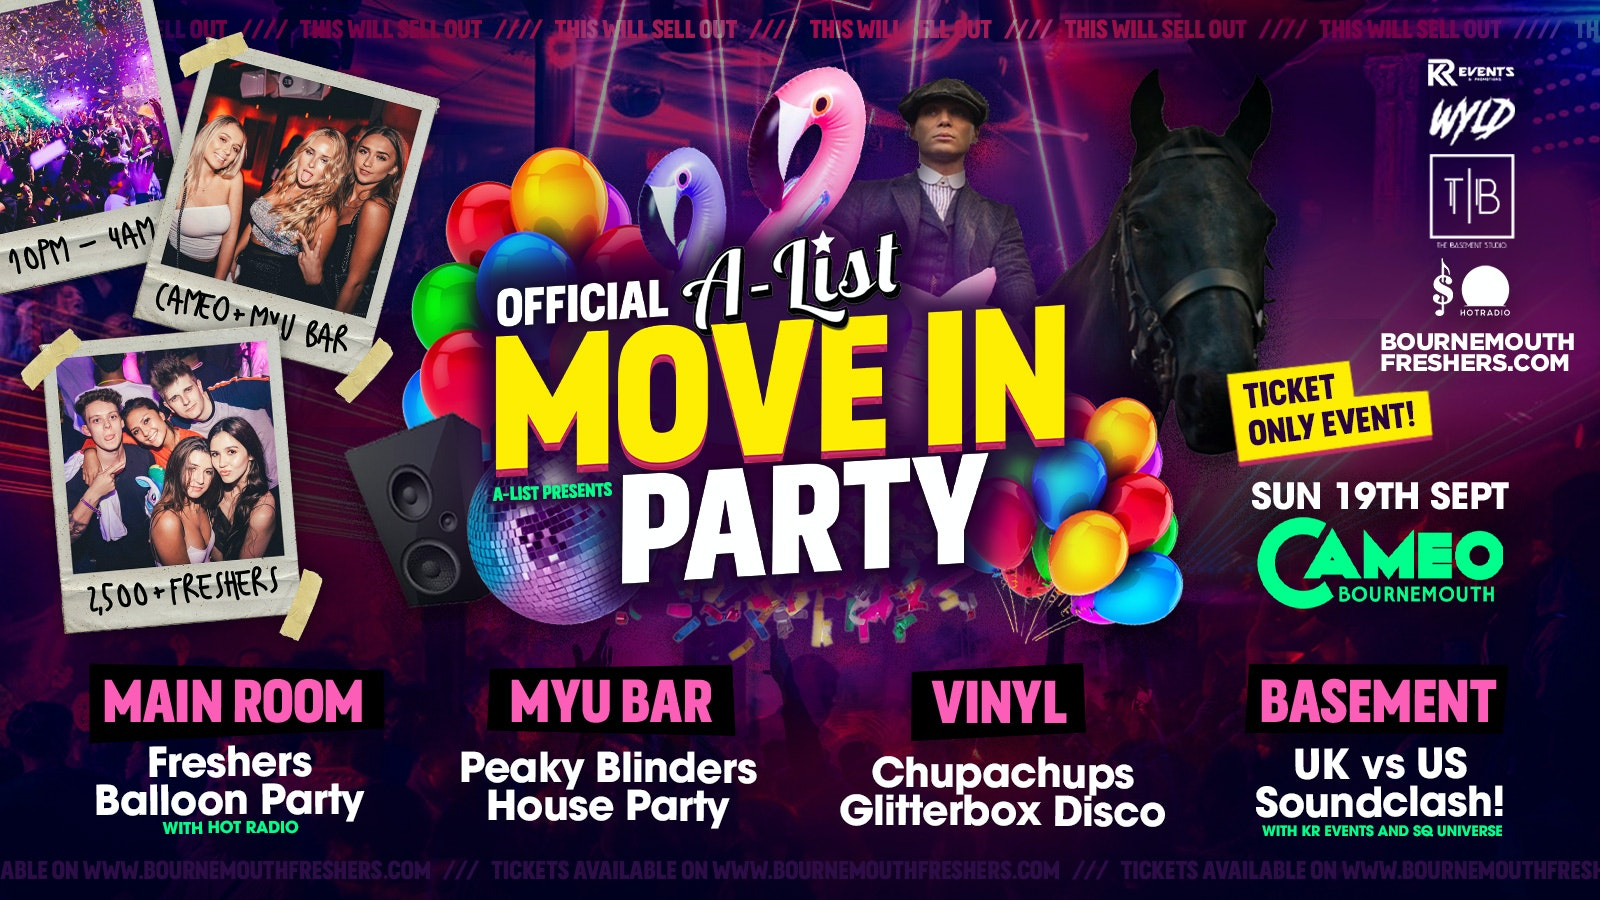 The Official A-list Move In Party Bournemouth at Cameo | Bournemouth Freshers 2021